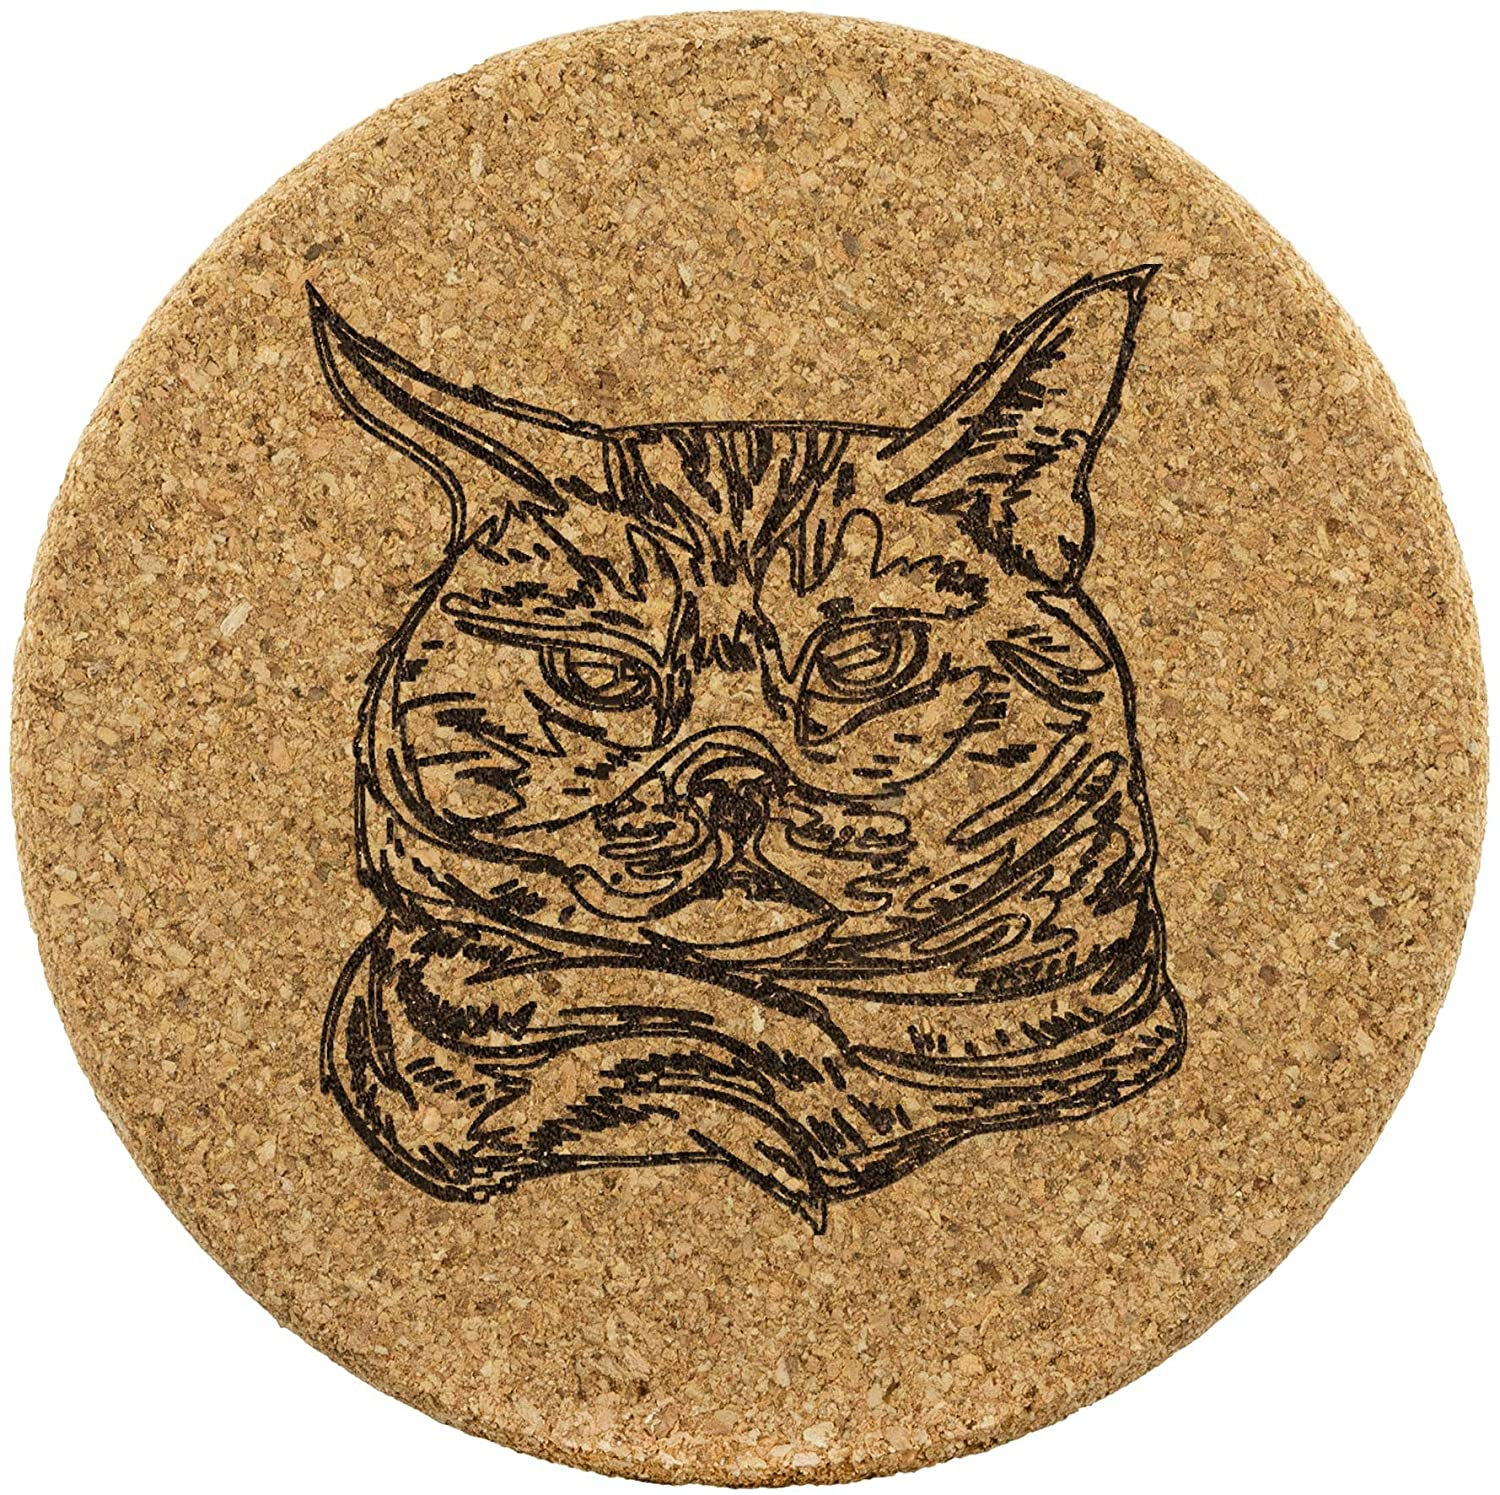 American Shorthair Cat Cork Coasters, Set of 4, Gifts for Cat Lovers 9184